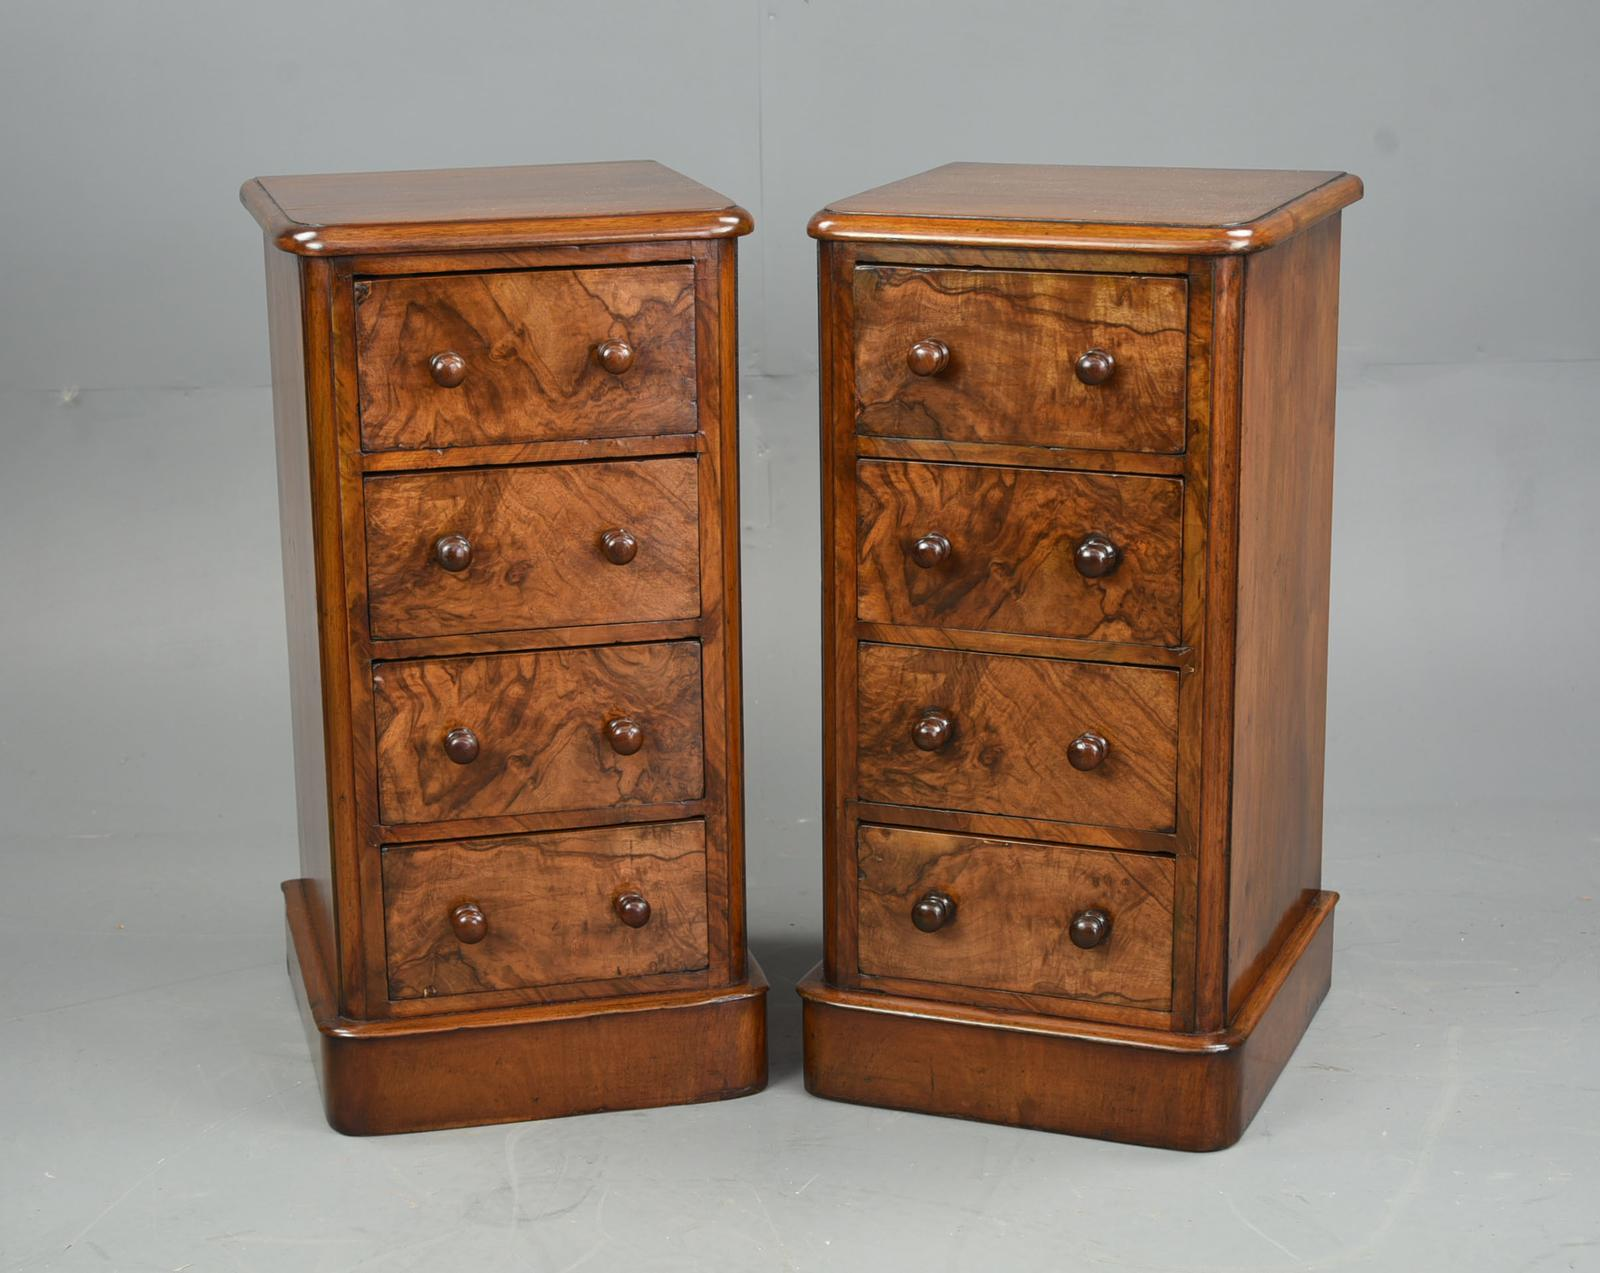 Pair of Victorian Burr Walnut Bedside Chests of Drawers (1 of 1)